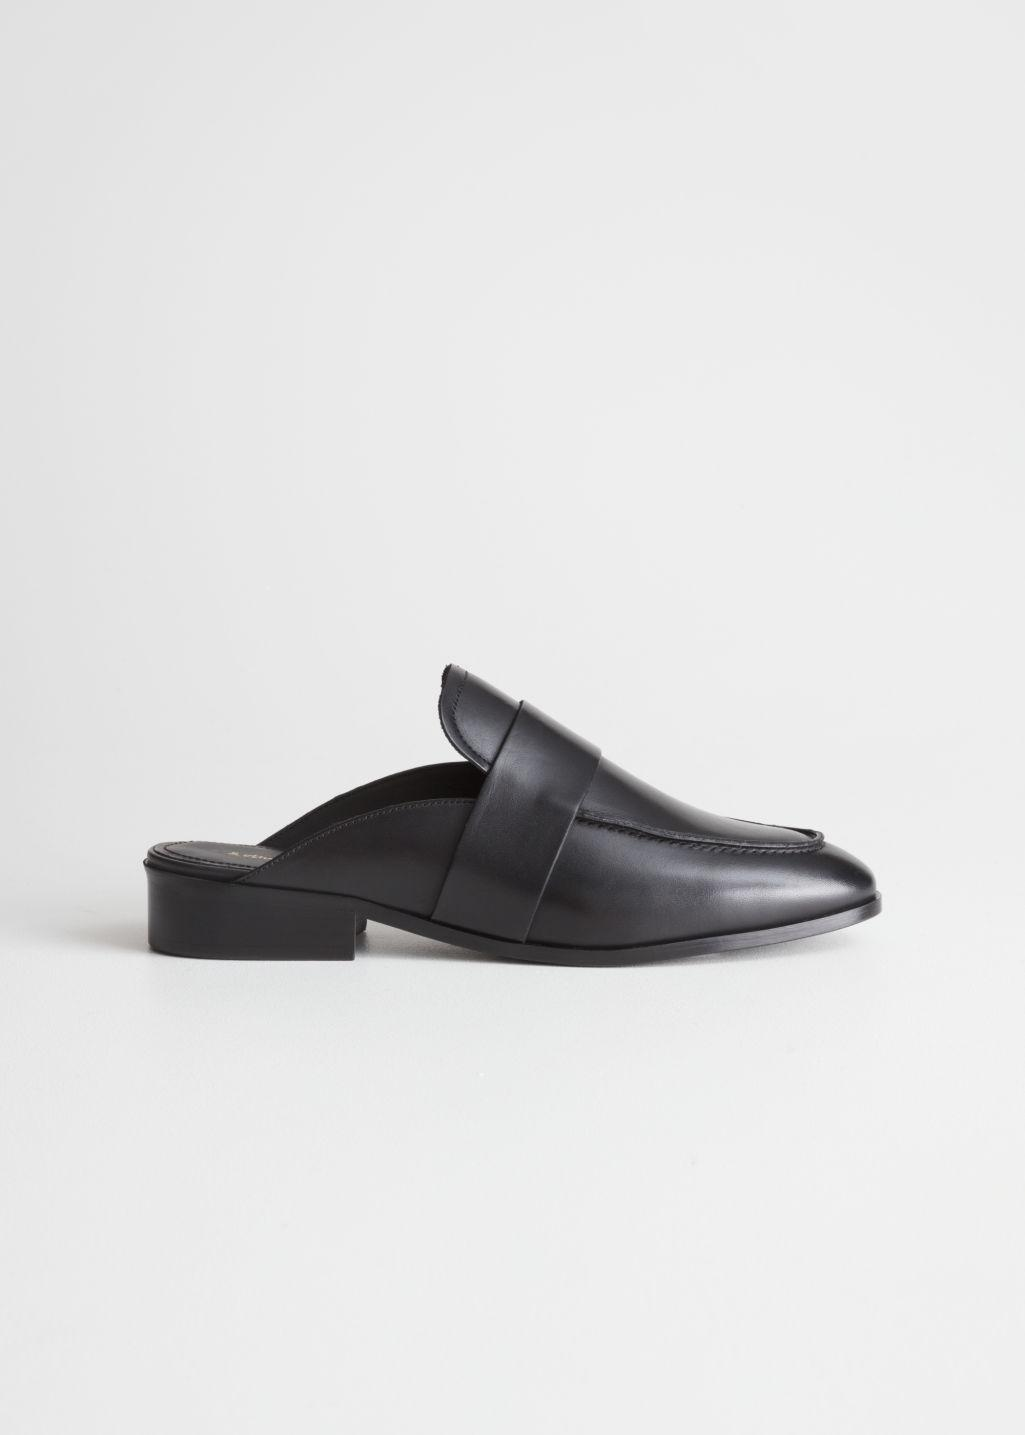 029cb019a22 Lyst -   Other Stories Slip-on Loafers in Black